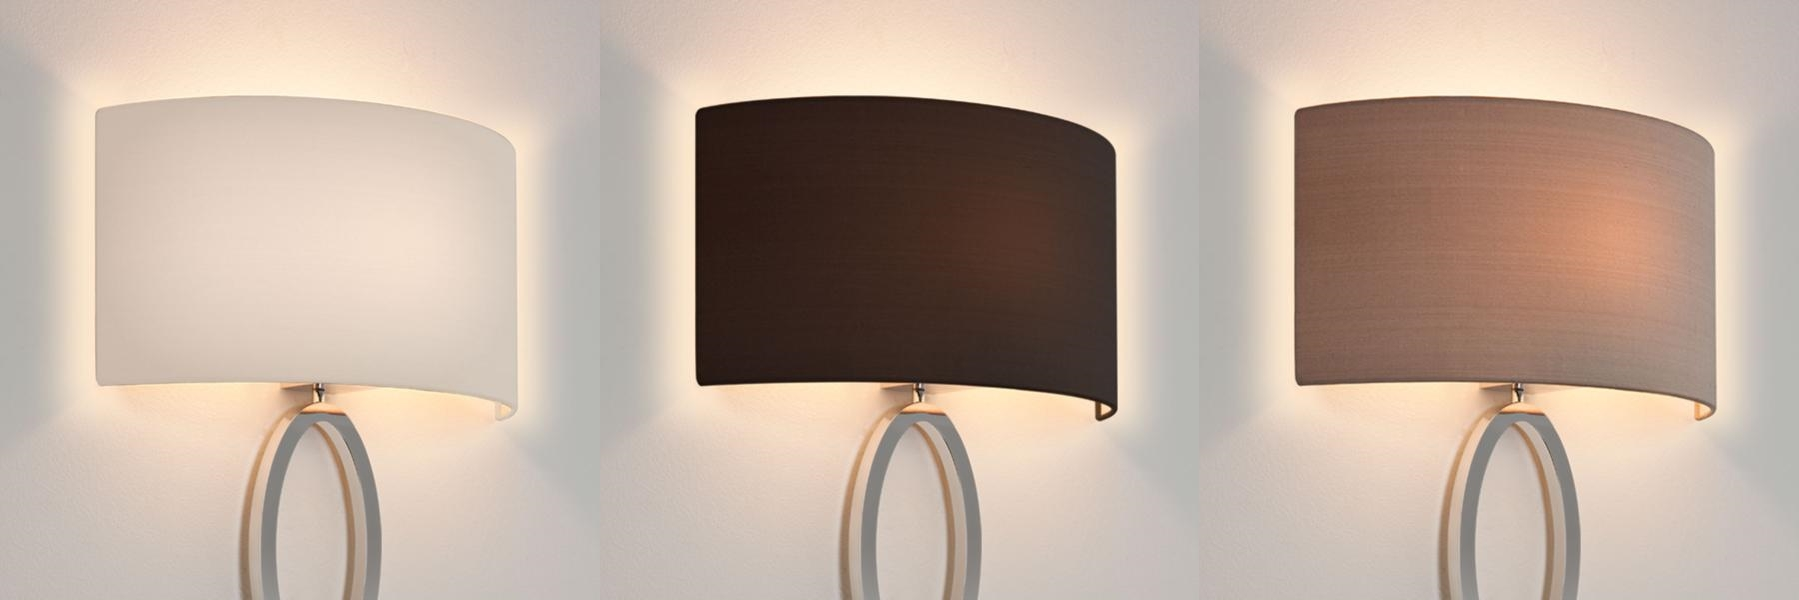 Lamp Shades Wall Lamps : Lamp shades wall lights - your great choice for the ambience Warisan Lighting